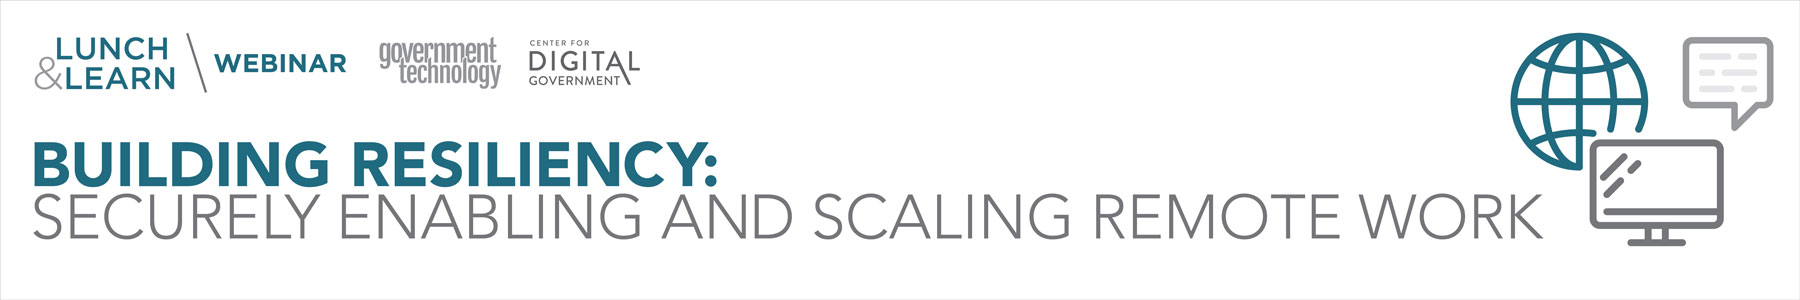 Building Resiliency: Securely Enabling and Scaling Remote Work